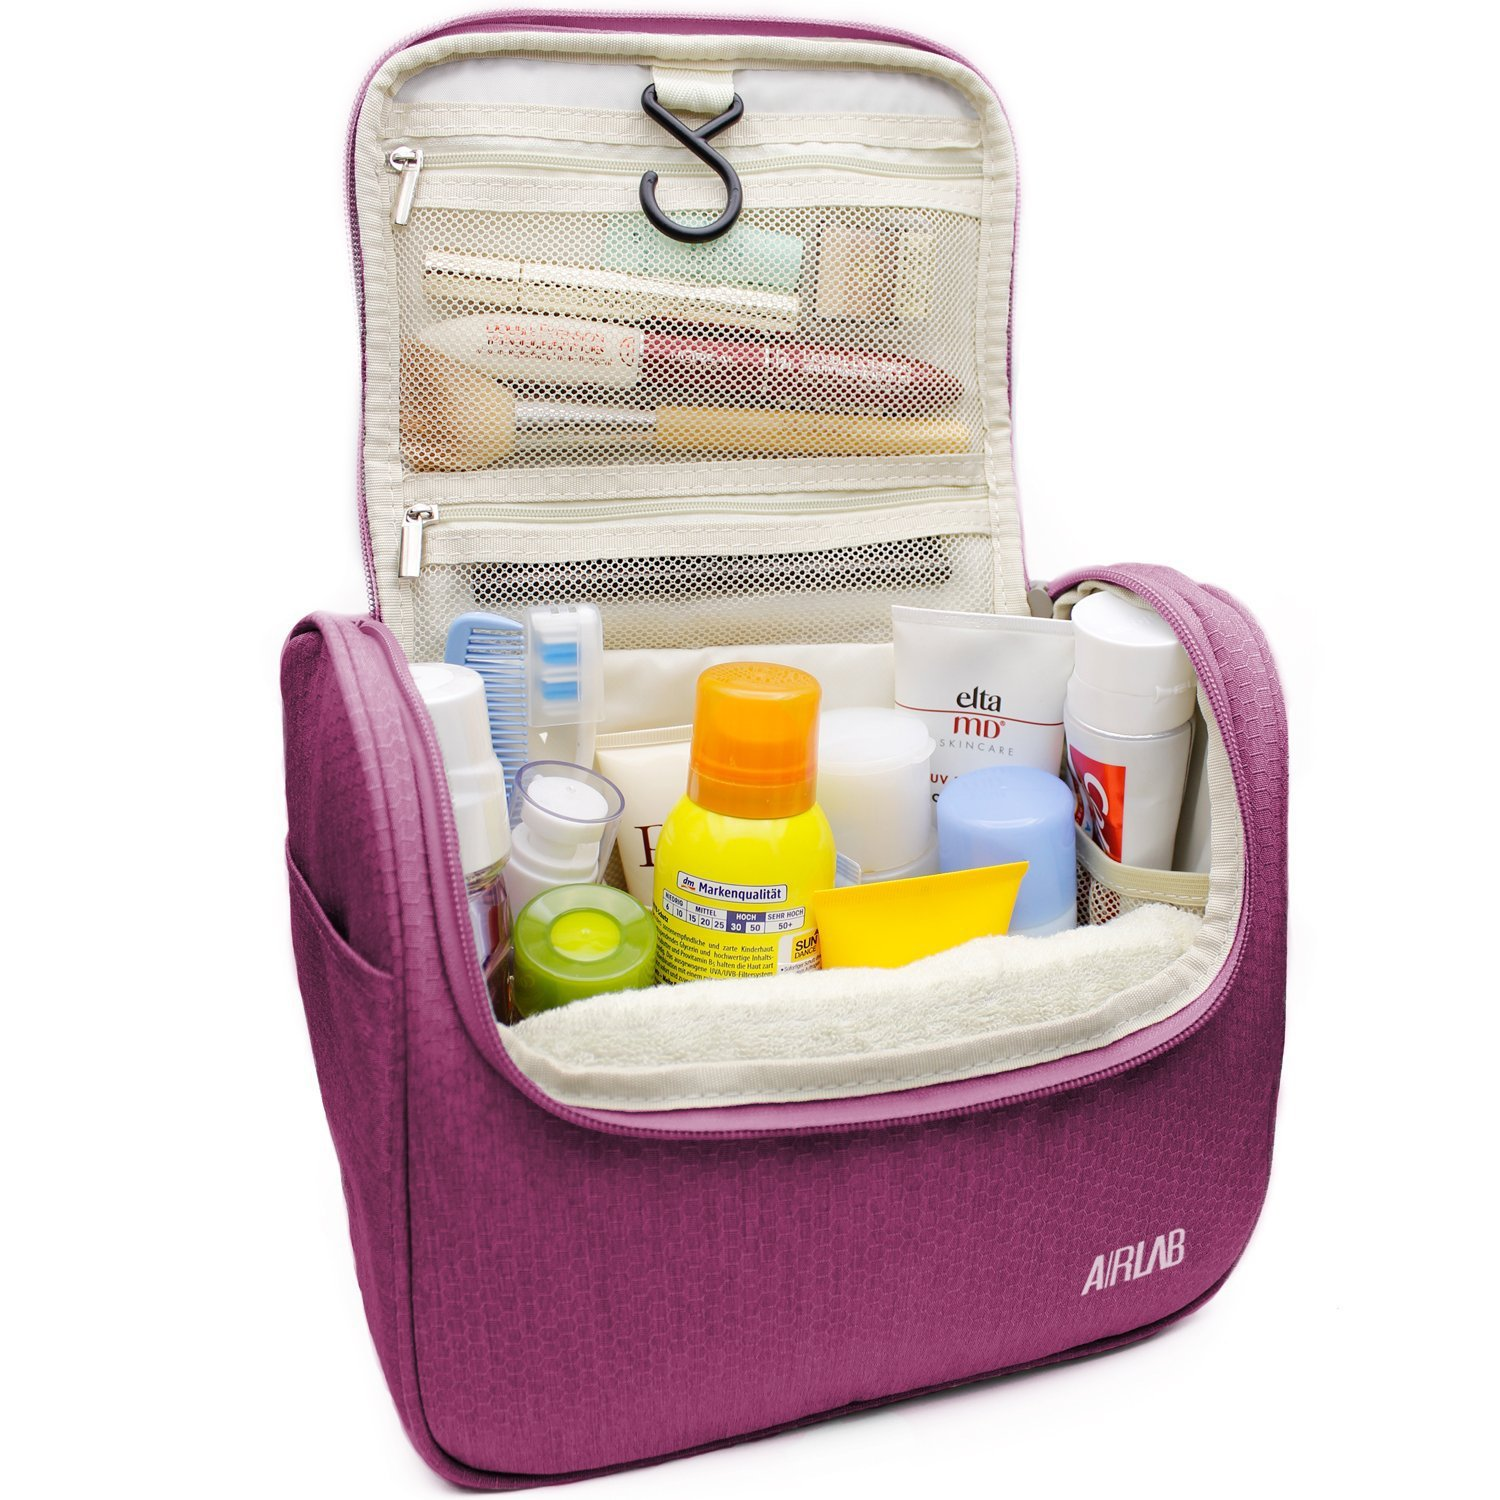 Hanging Toiletry Bag, Airlab Large Cosmetic Bag with Handle and Hook, Travel Toiletry Organizer for Men and Women, Size: 9.45 x 7.65 x 5 inch, Hot Pink